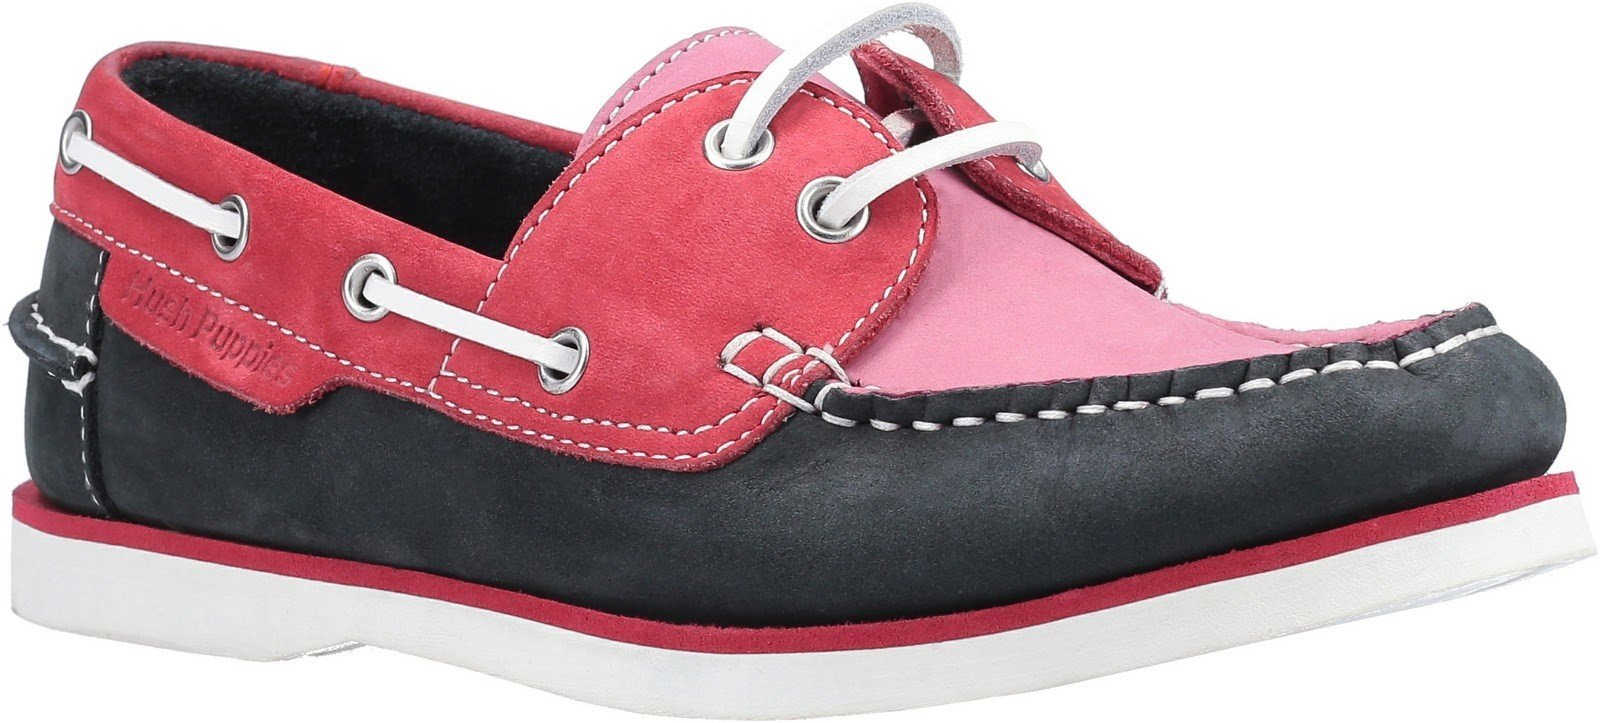 Hush Puppies Women's Hattie Lace Up Boat Shoe Various Colours 30223-51424 - Pink/Navy 3